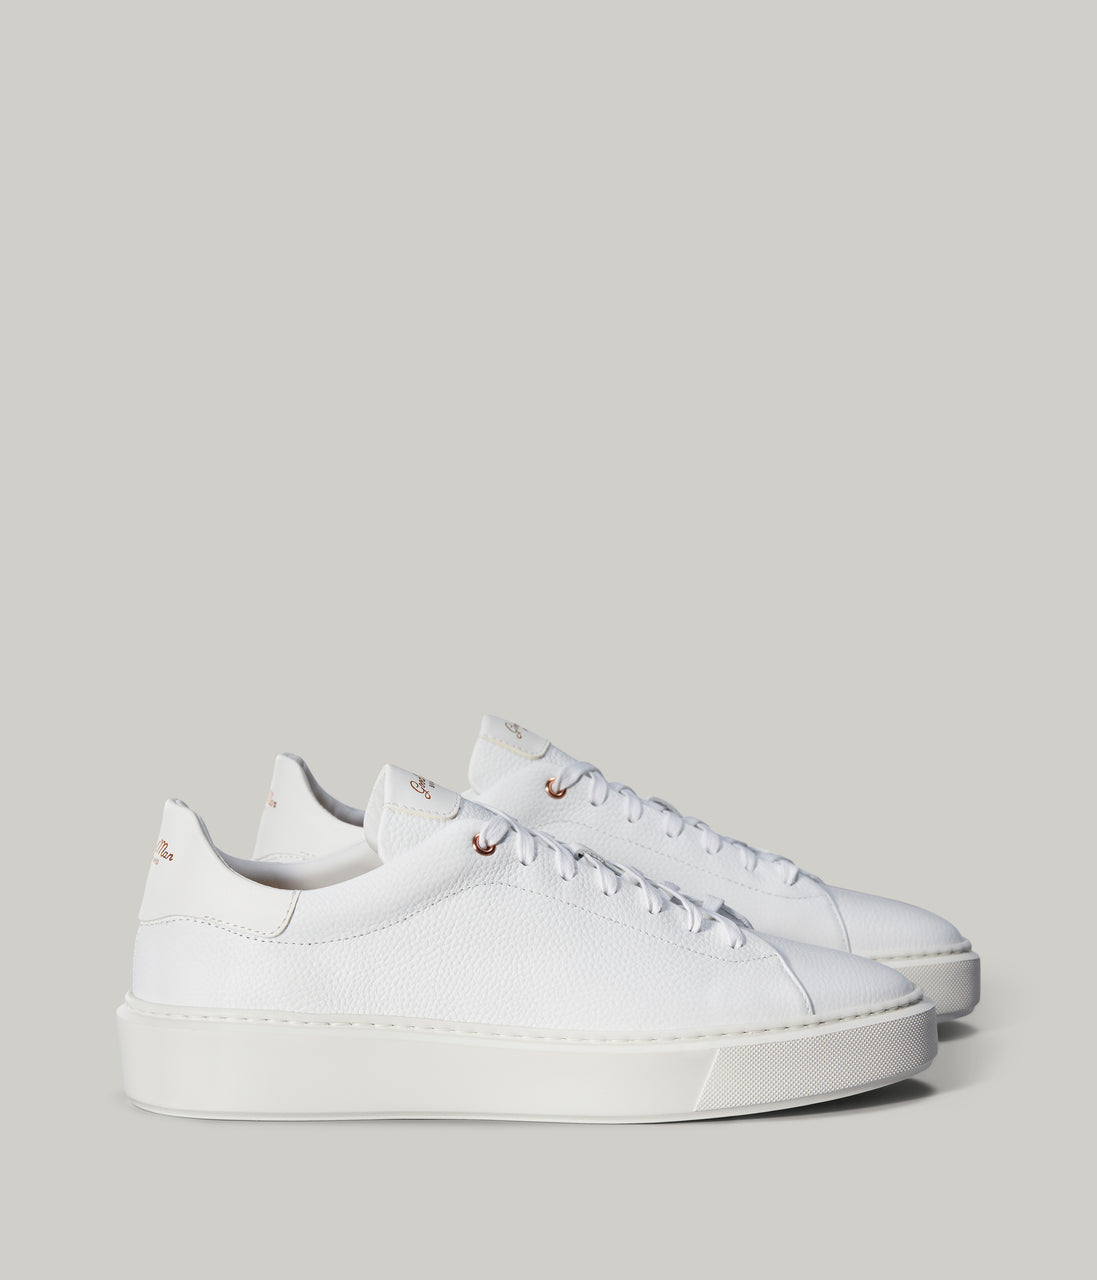 Legend London Sneaker in Pebble Leather - White Pebble - Good Man Brand - Legend London Sneaker in Pebble Leather - White Pebble